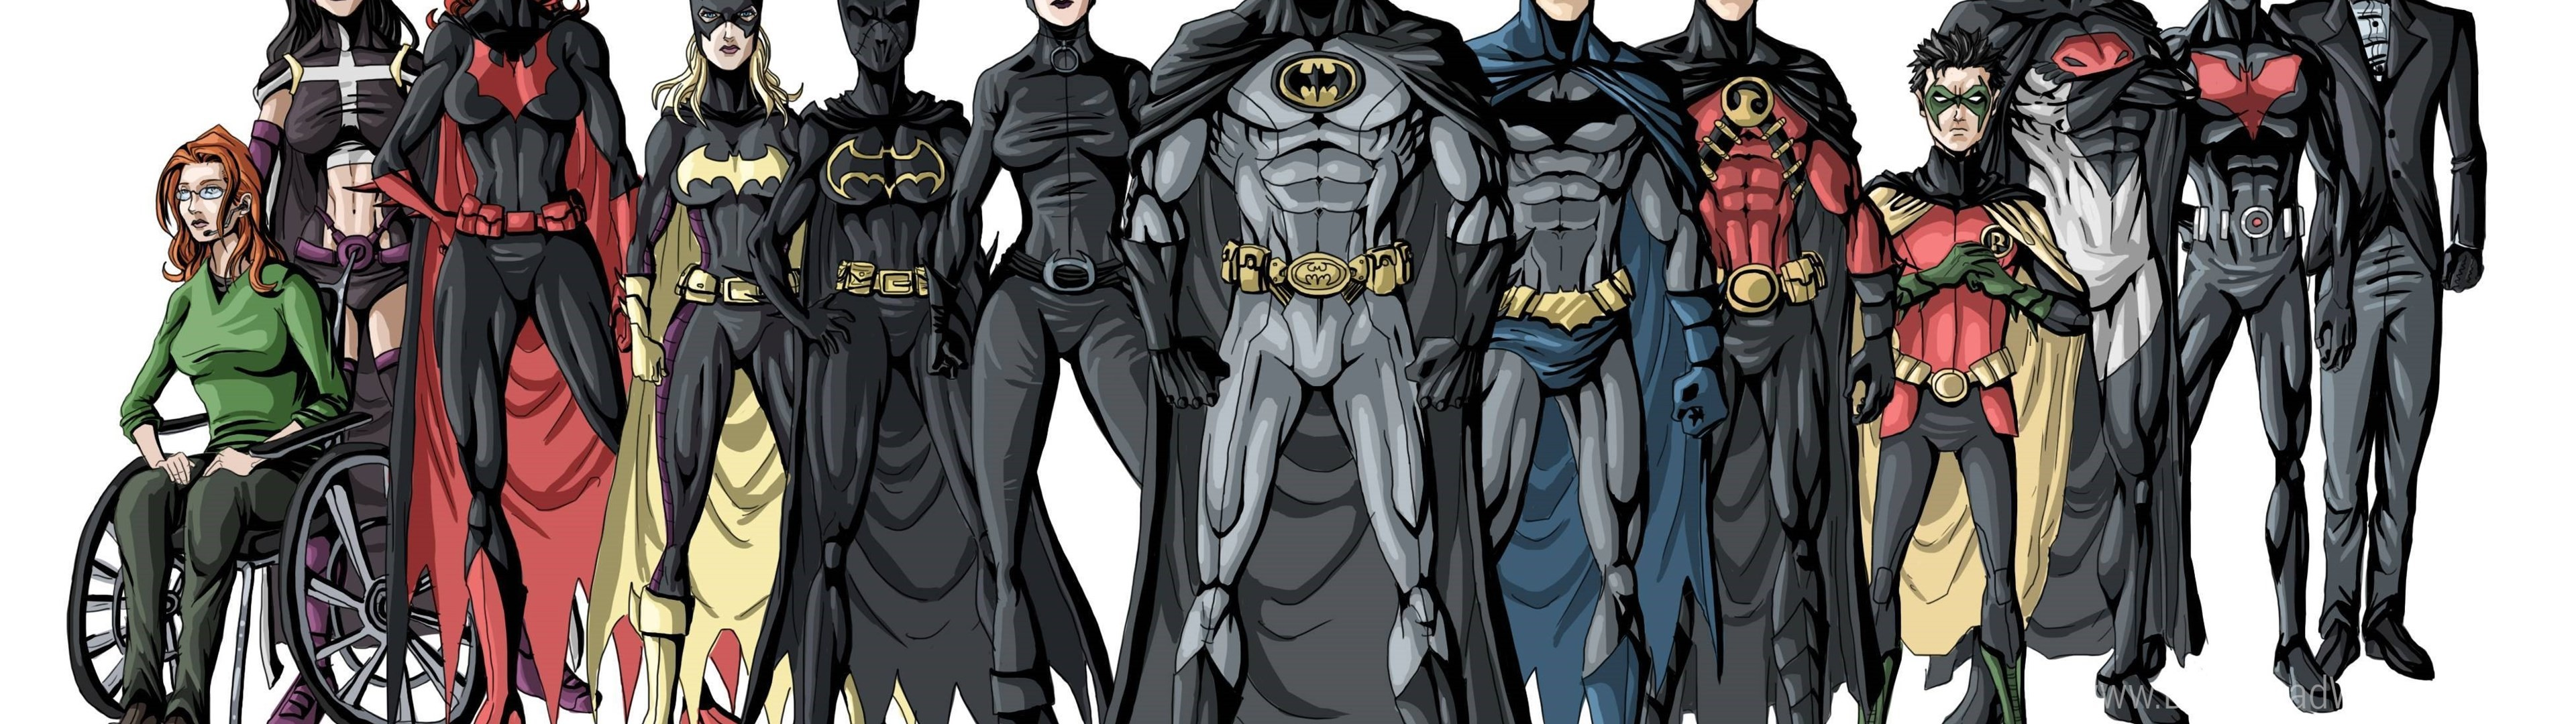 3840x1080 Download Dual Screen Wide  - Batman, Betgerl, Dick Grayson, Jason  Todd, Nightwing, Red Cap, Robin, Stephanie Brown, Tim Drake Wallpaper